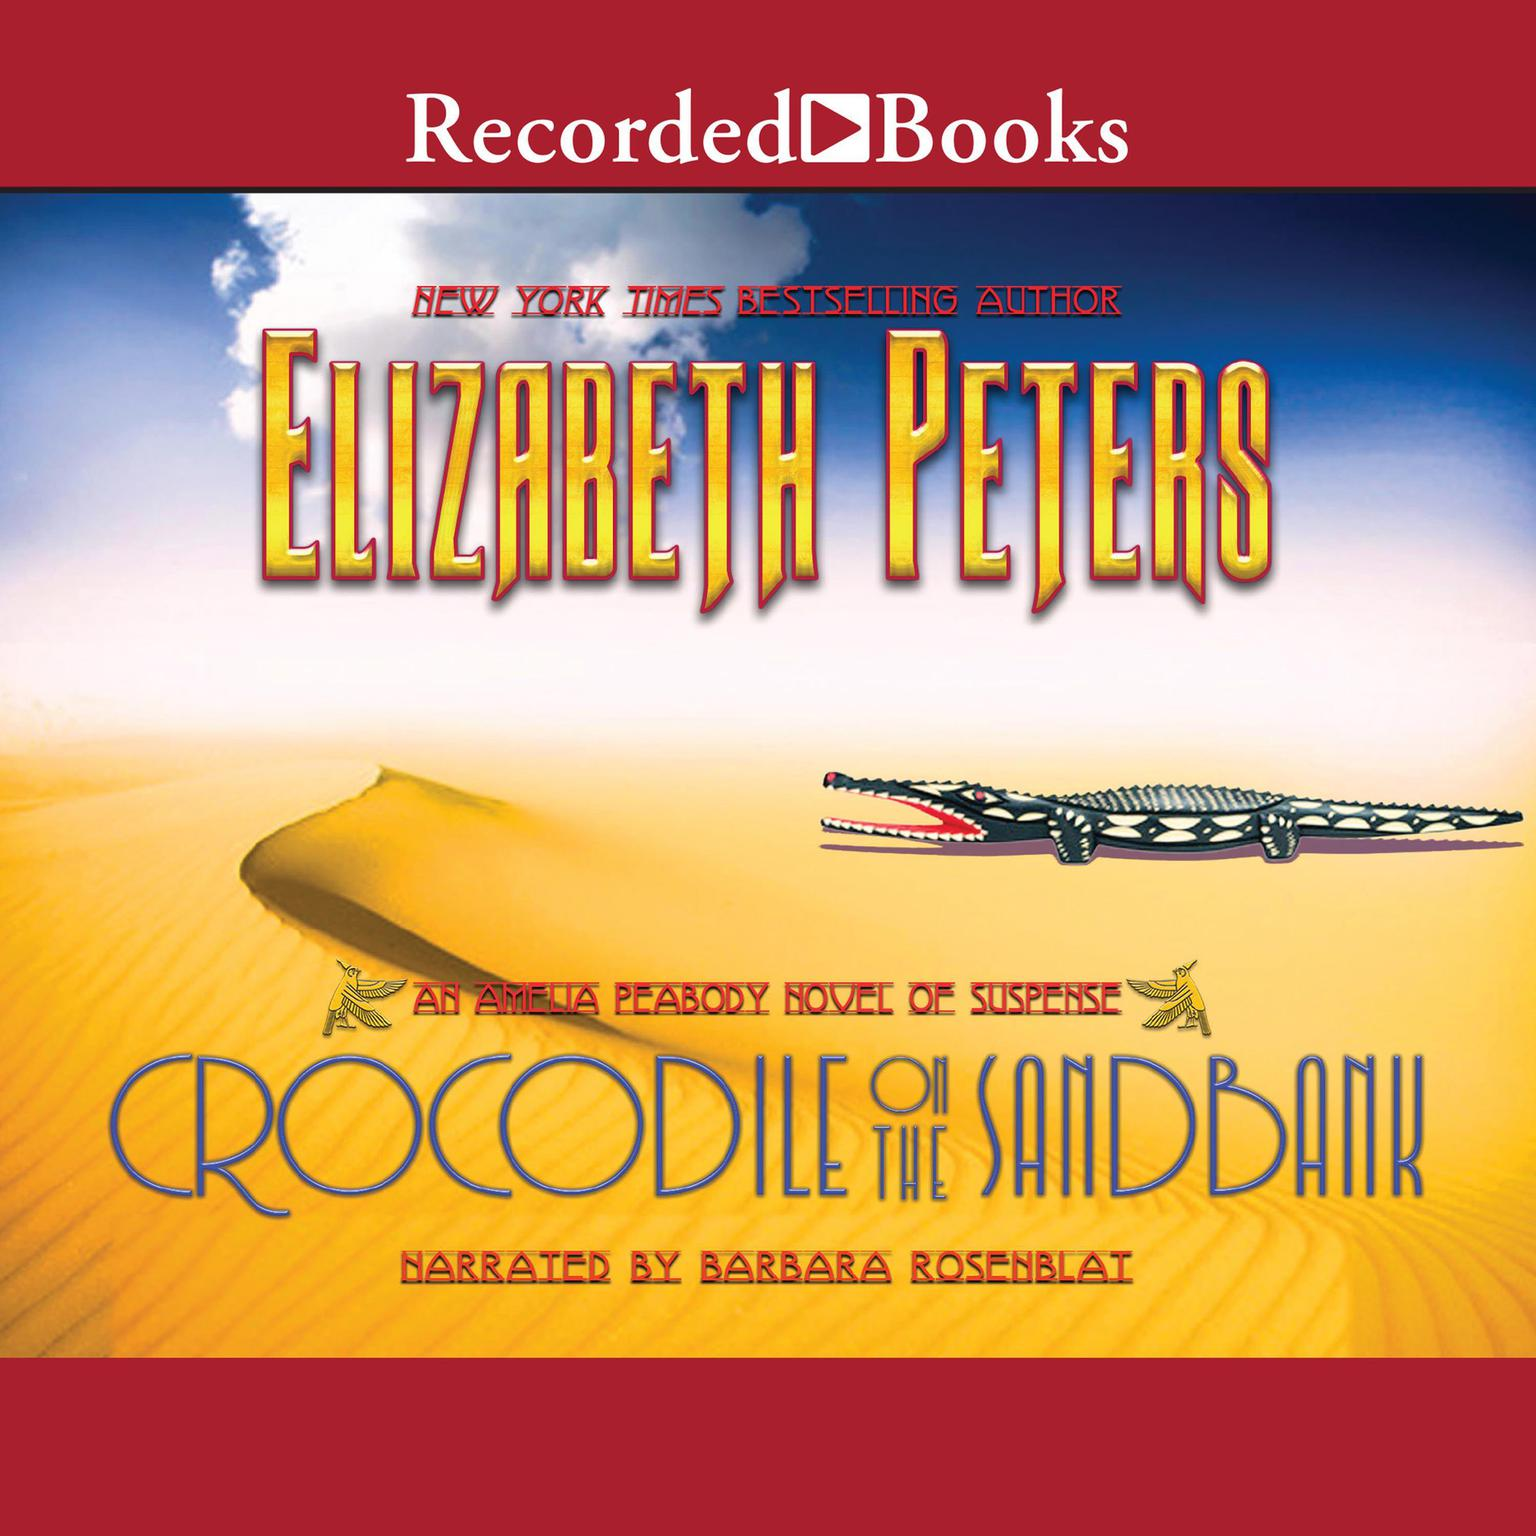 Printable Crocodile on the Sandbank Audiobook Cover Art